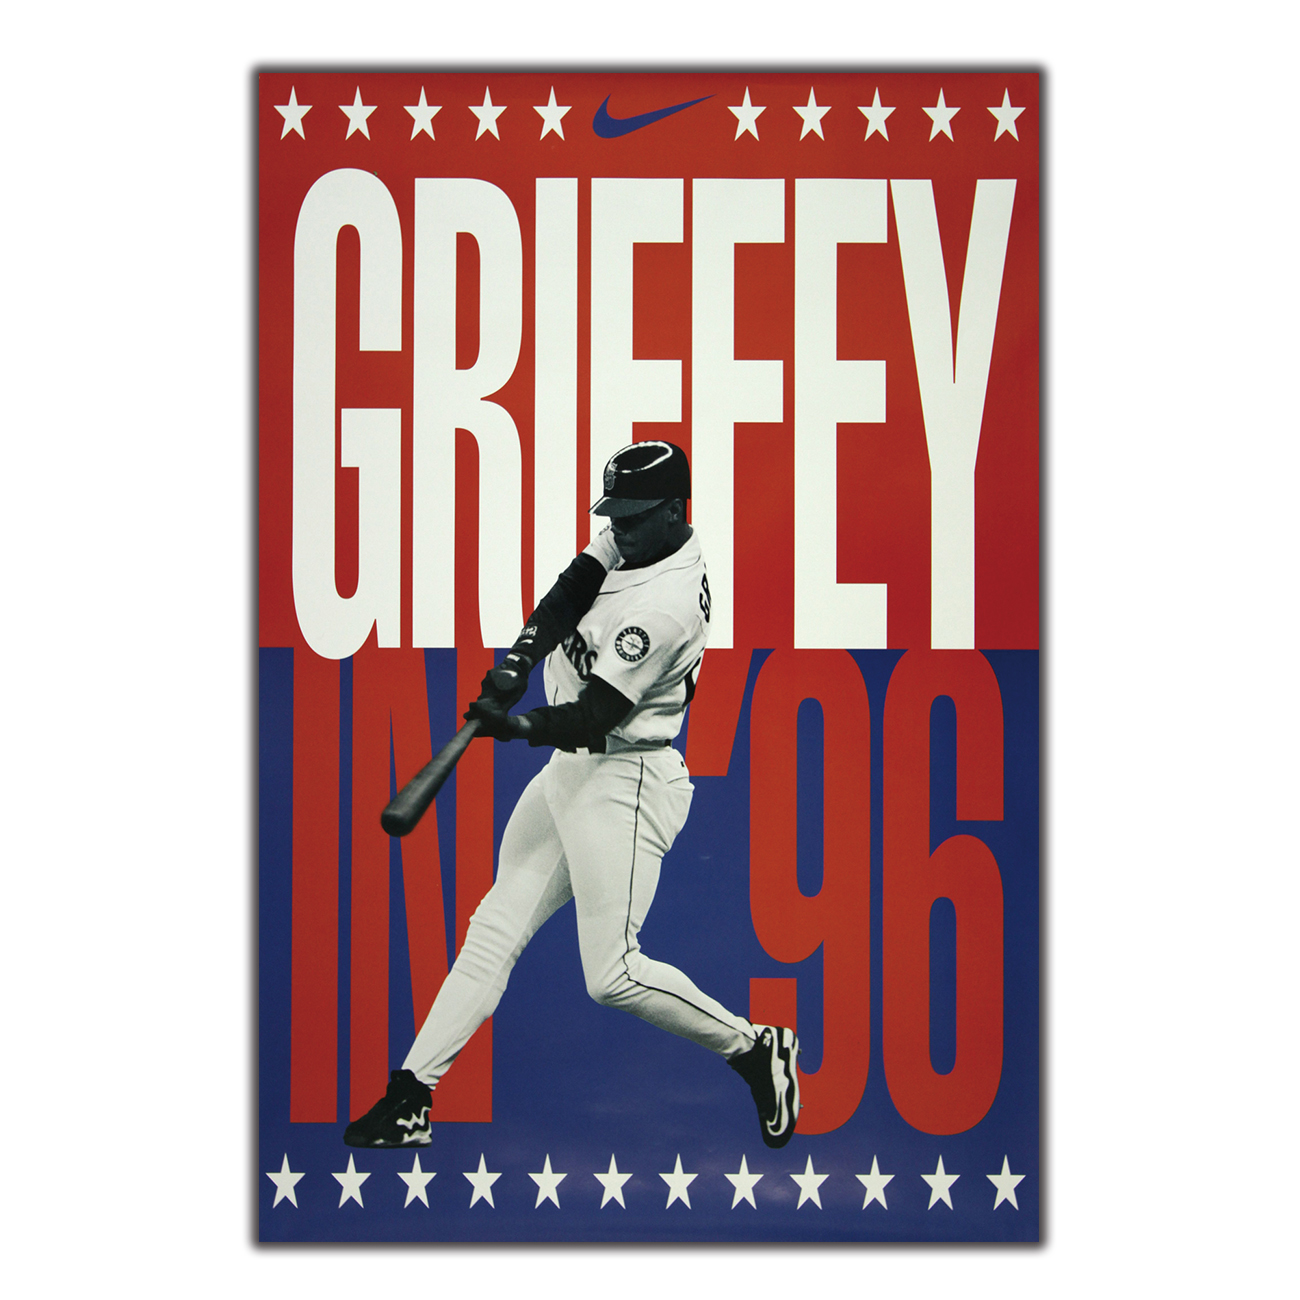 9cb6450f65 Buy griffey and get free shipping on AliExpress.com